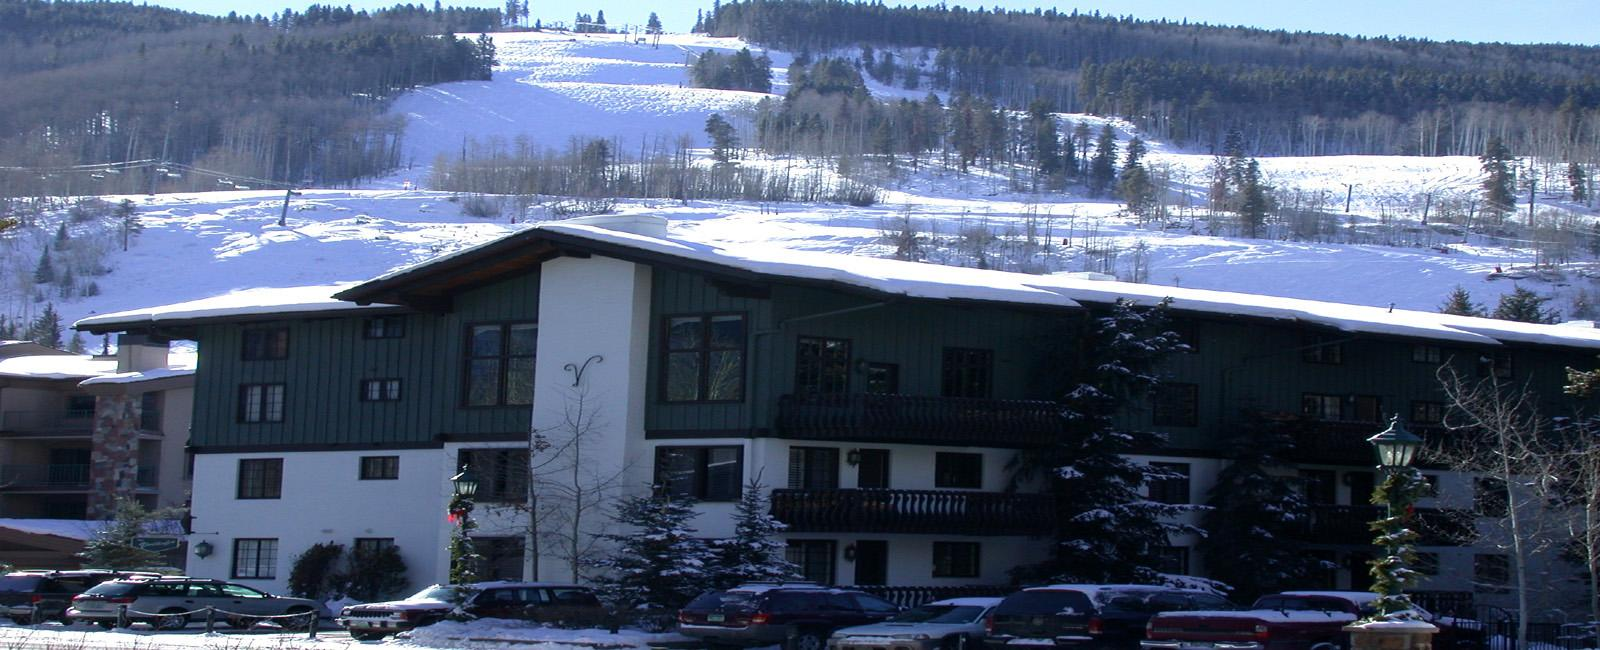 Vail Realty Vorlaufer Vacation Rentals In The Vail Valley Vail Village Lionshead Beaver Creek